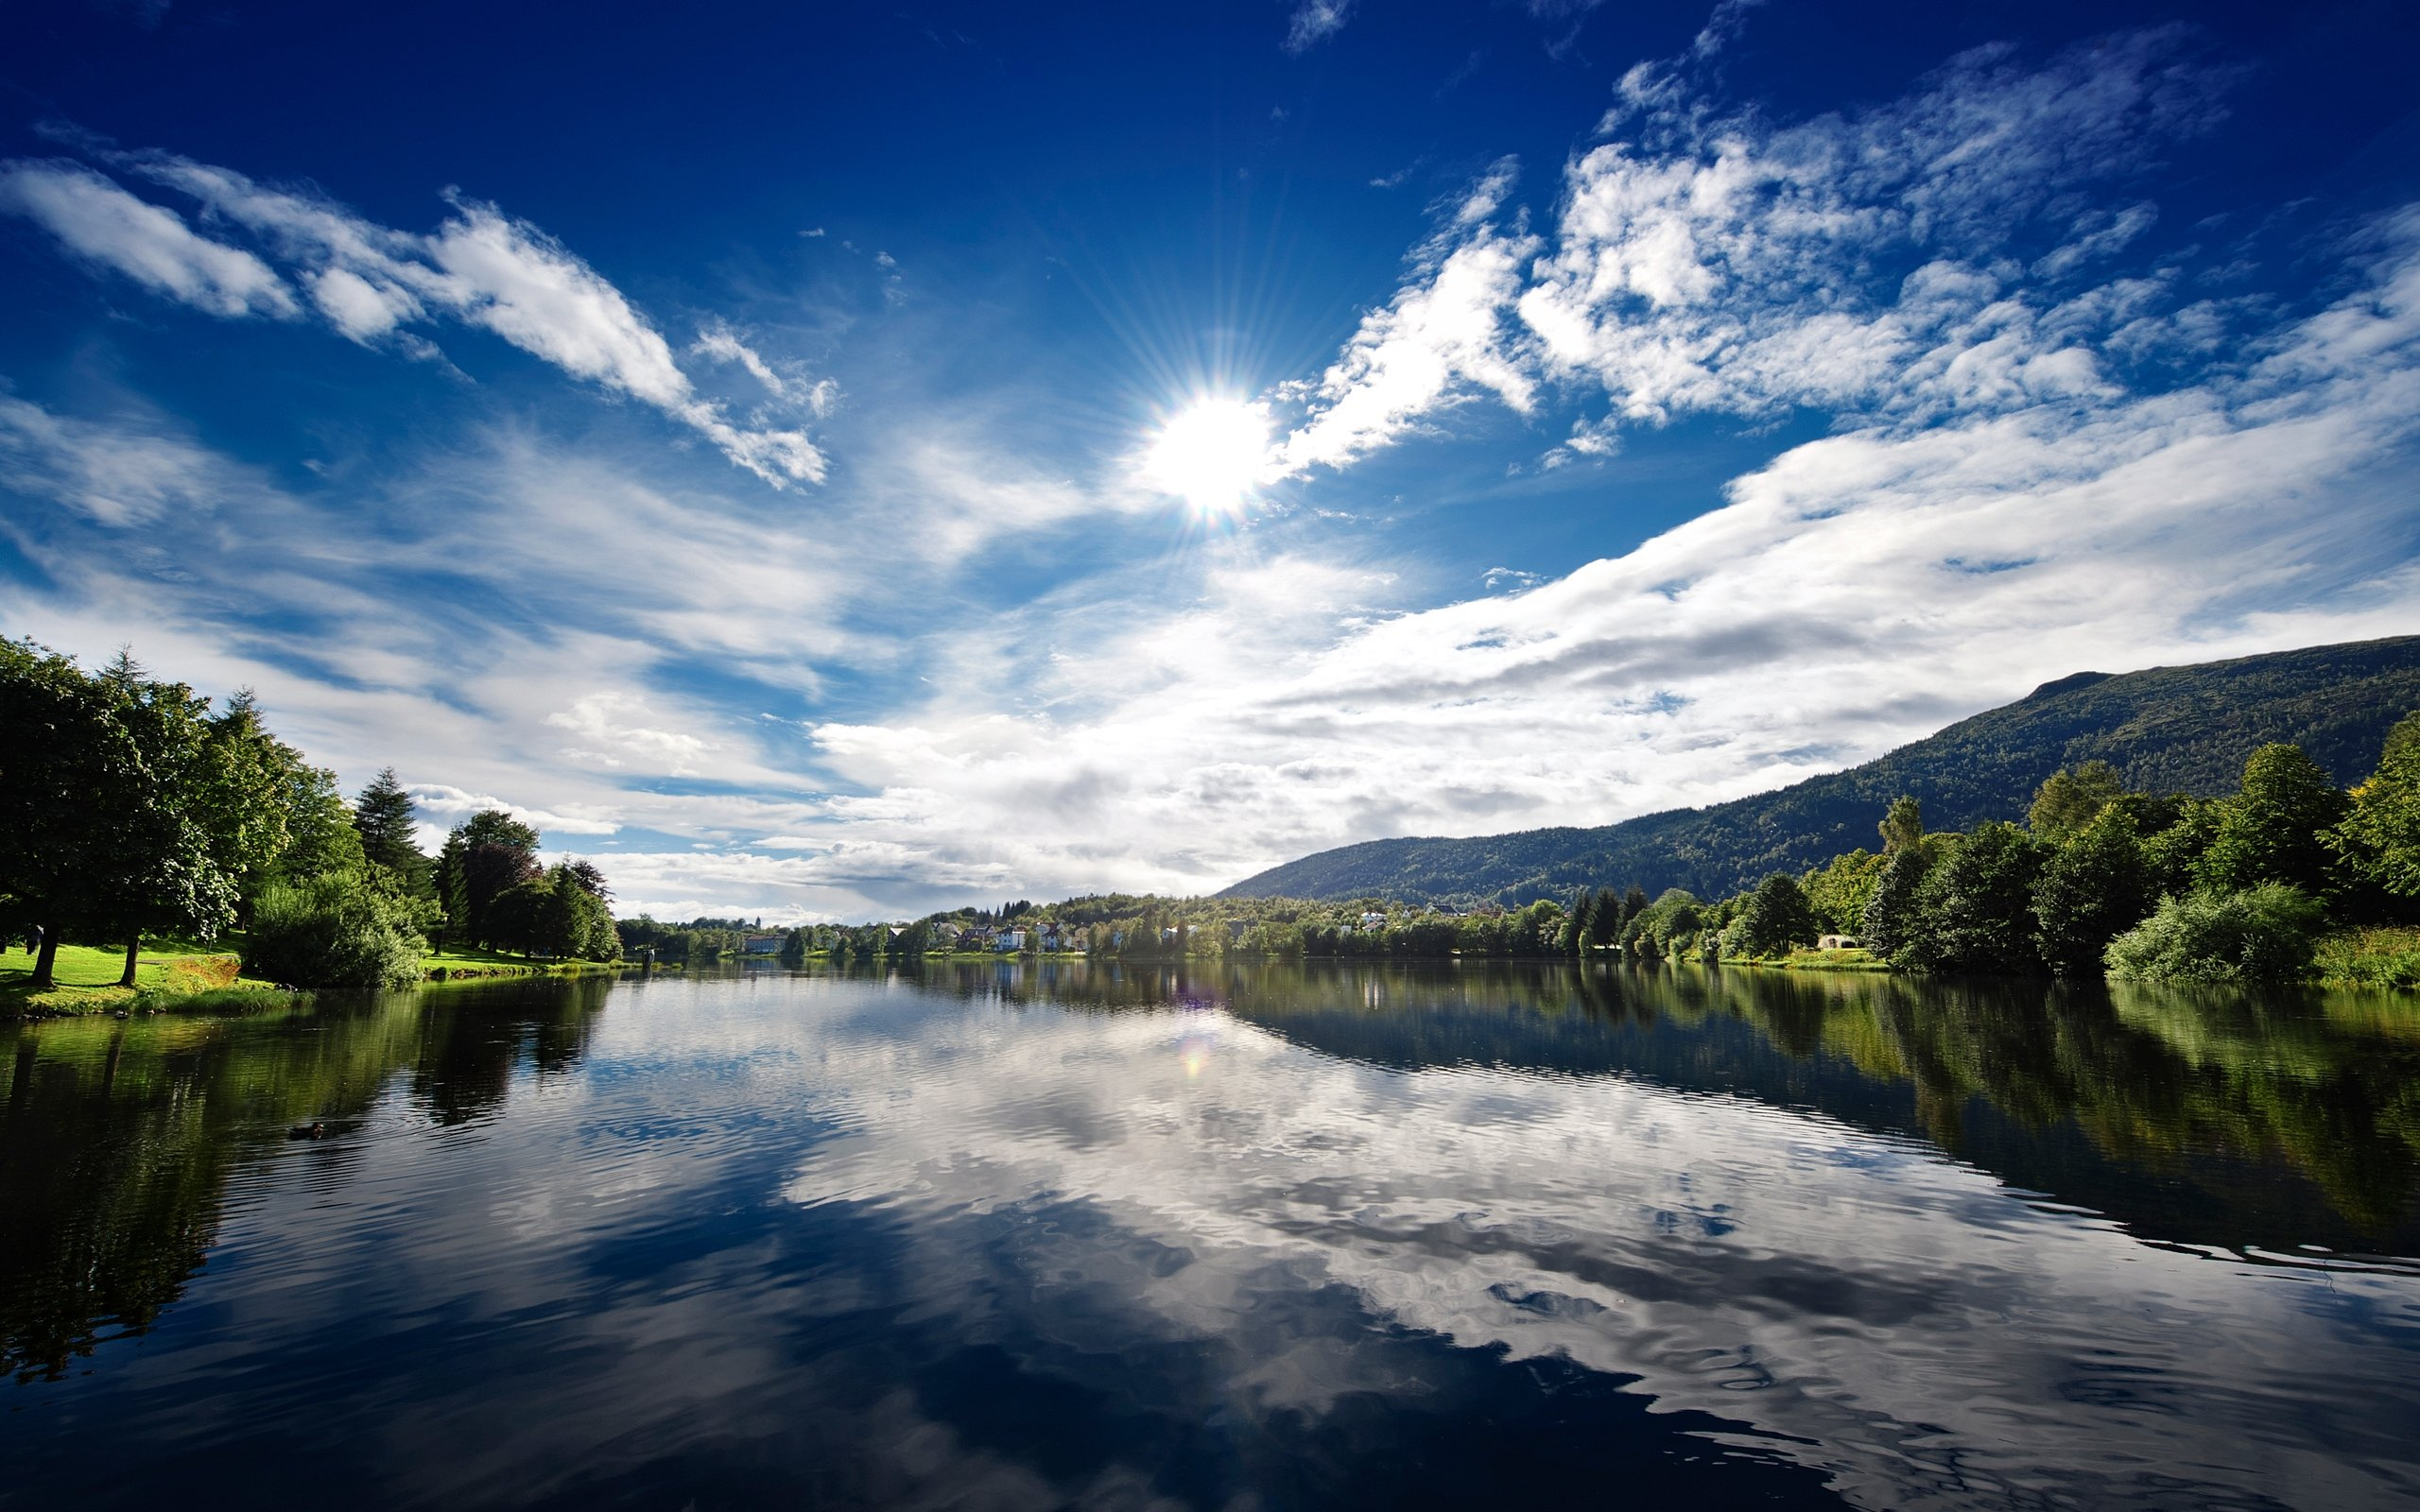 Sunny Lake Wallpapers | HD Wallpapers